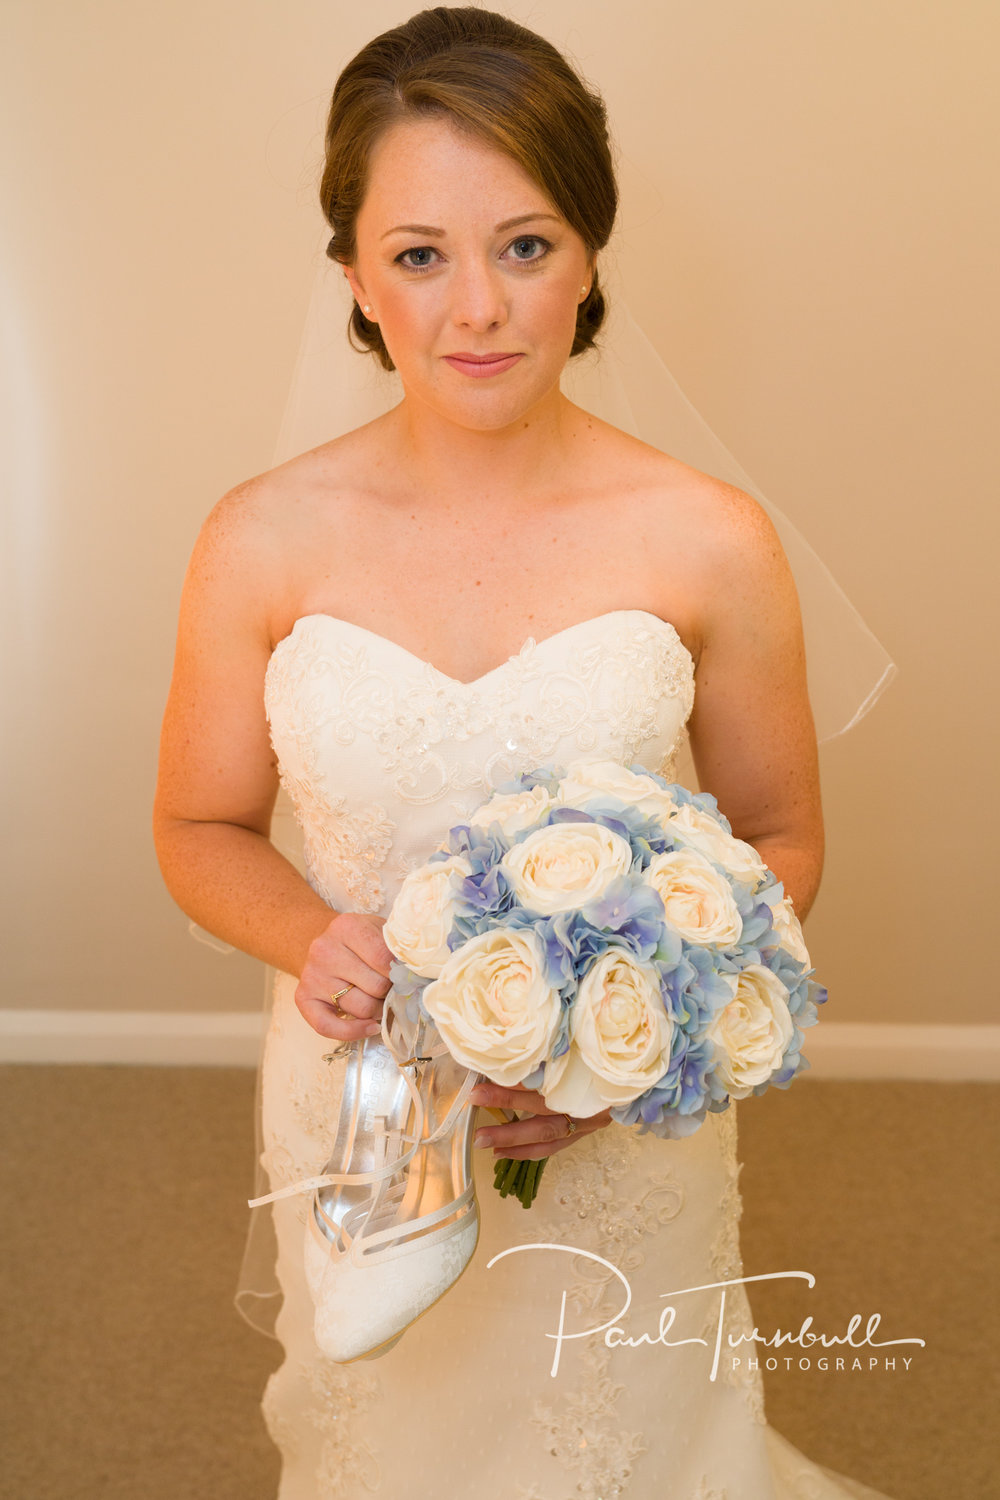 wedding-photographer-south-dalton-walkington-yorkshire-emma-james-016.jpg